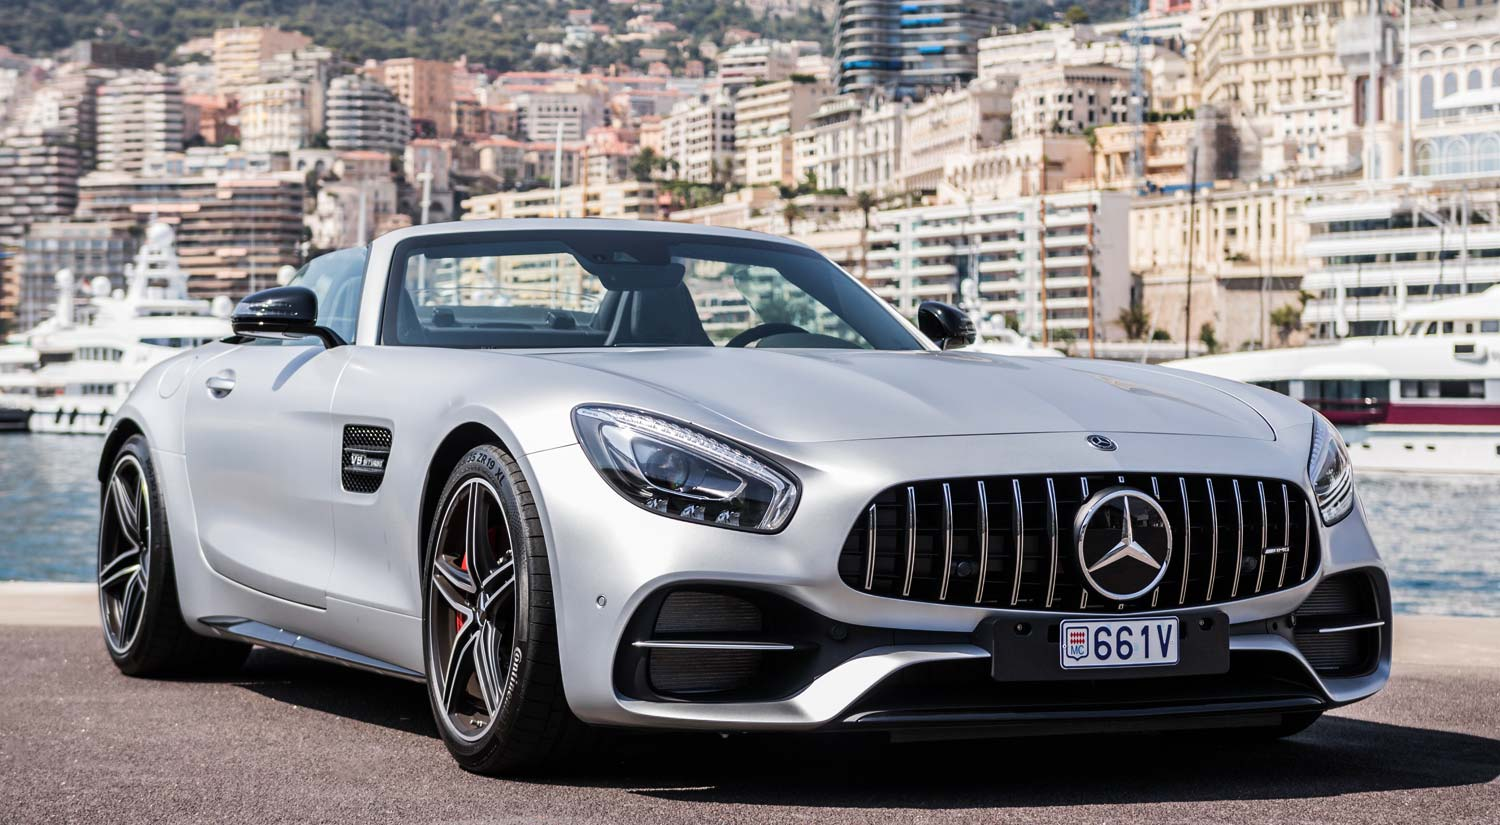 Mercedes Amg Mercedes Amg Gt C Roadster Five Stars Rentals Monte Carlo